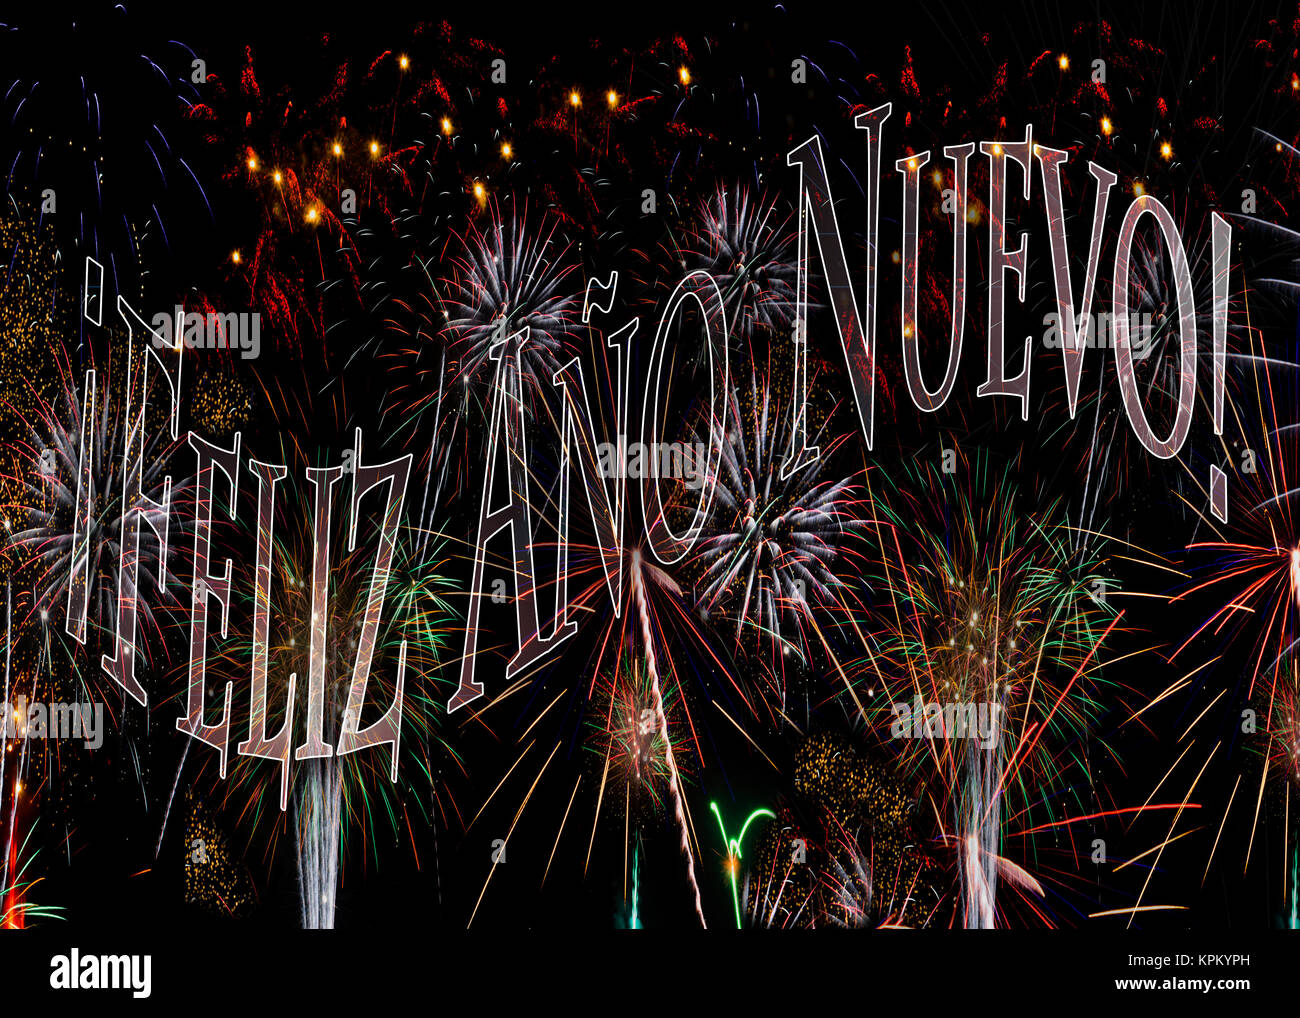 fireworks 2018 happy new year in spanish concept available with year 2018 behind see kpkypk and in english and german